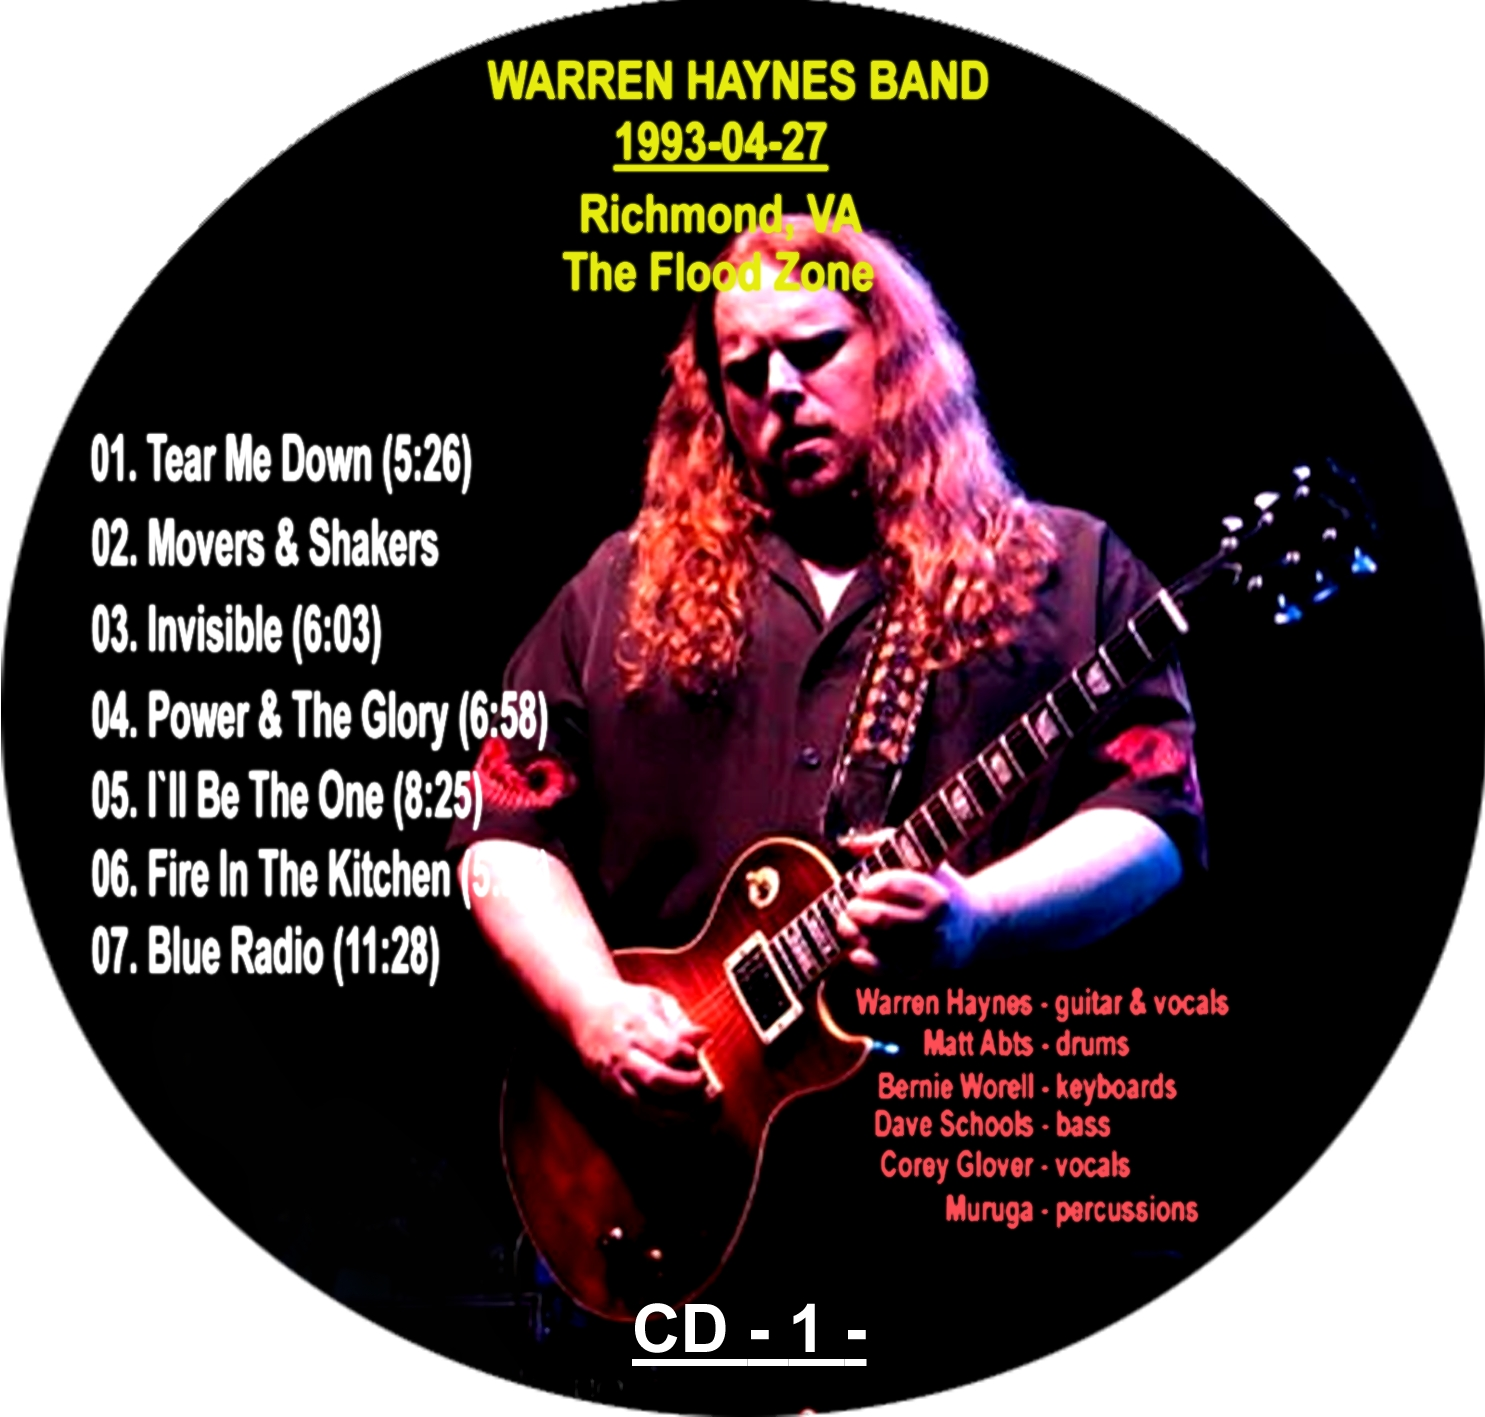 WarrenHaynesBand1993-04-27TheFloodZoneRichmondVA (5).jpg